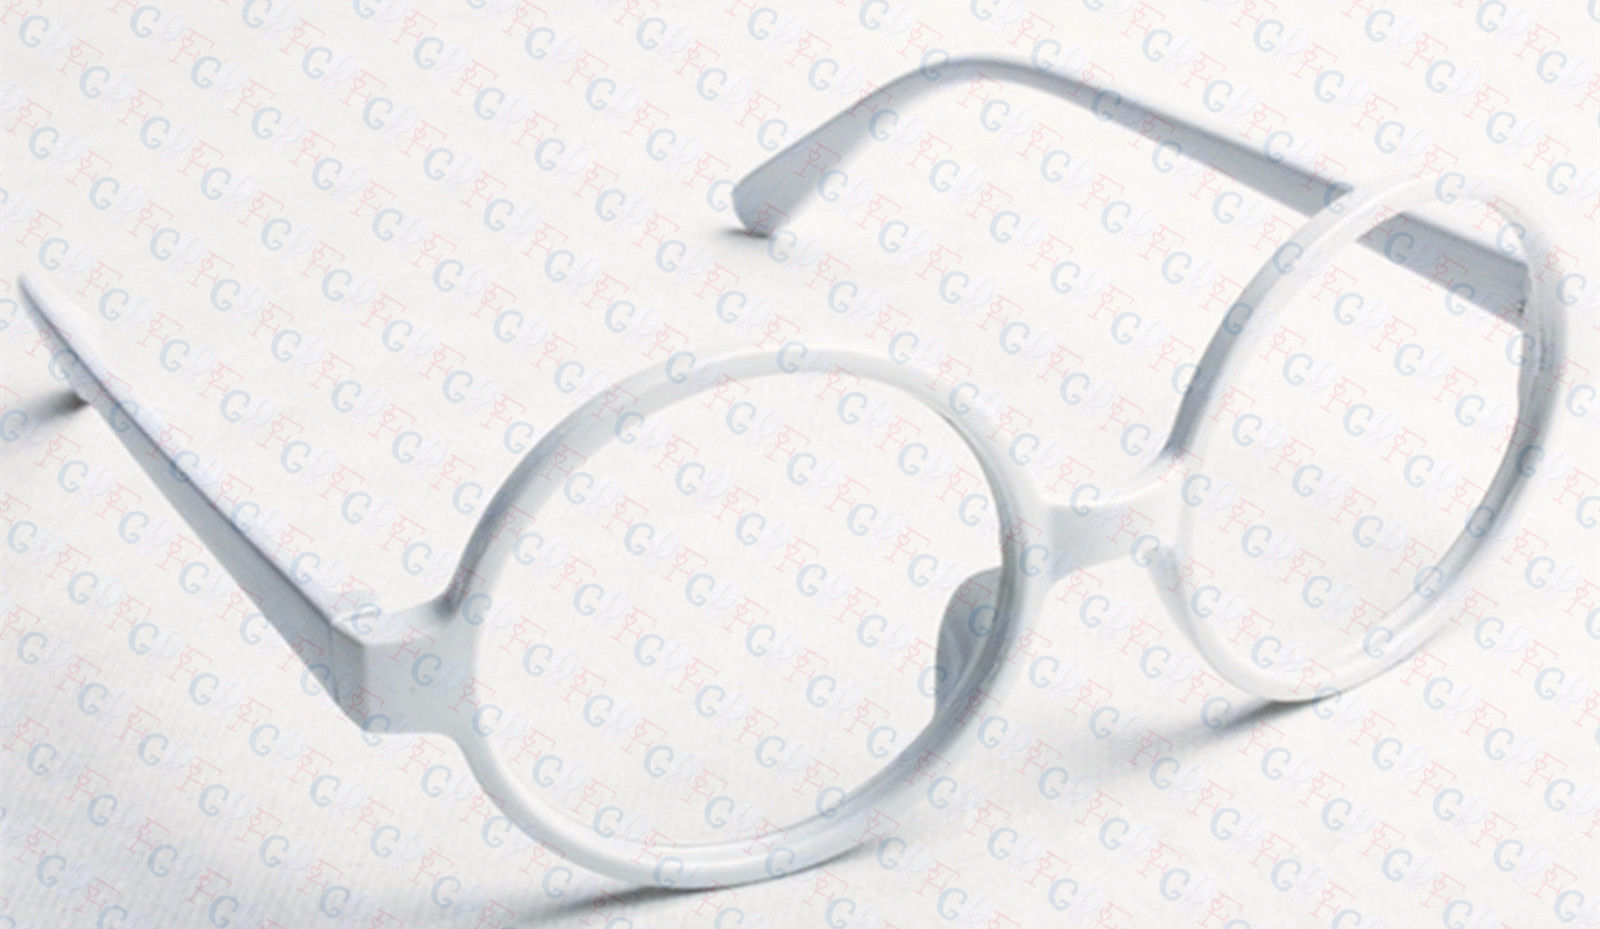 Classic Vintage Round Wizard Costume Nerdy Glasses Frames NO LENS Spectacle Wear image 9